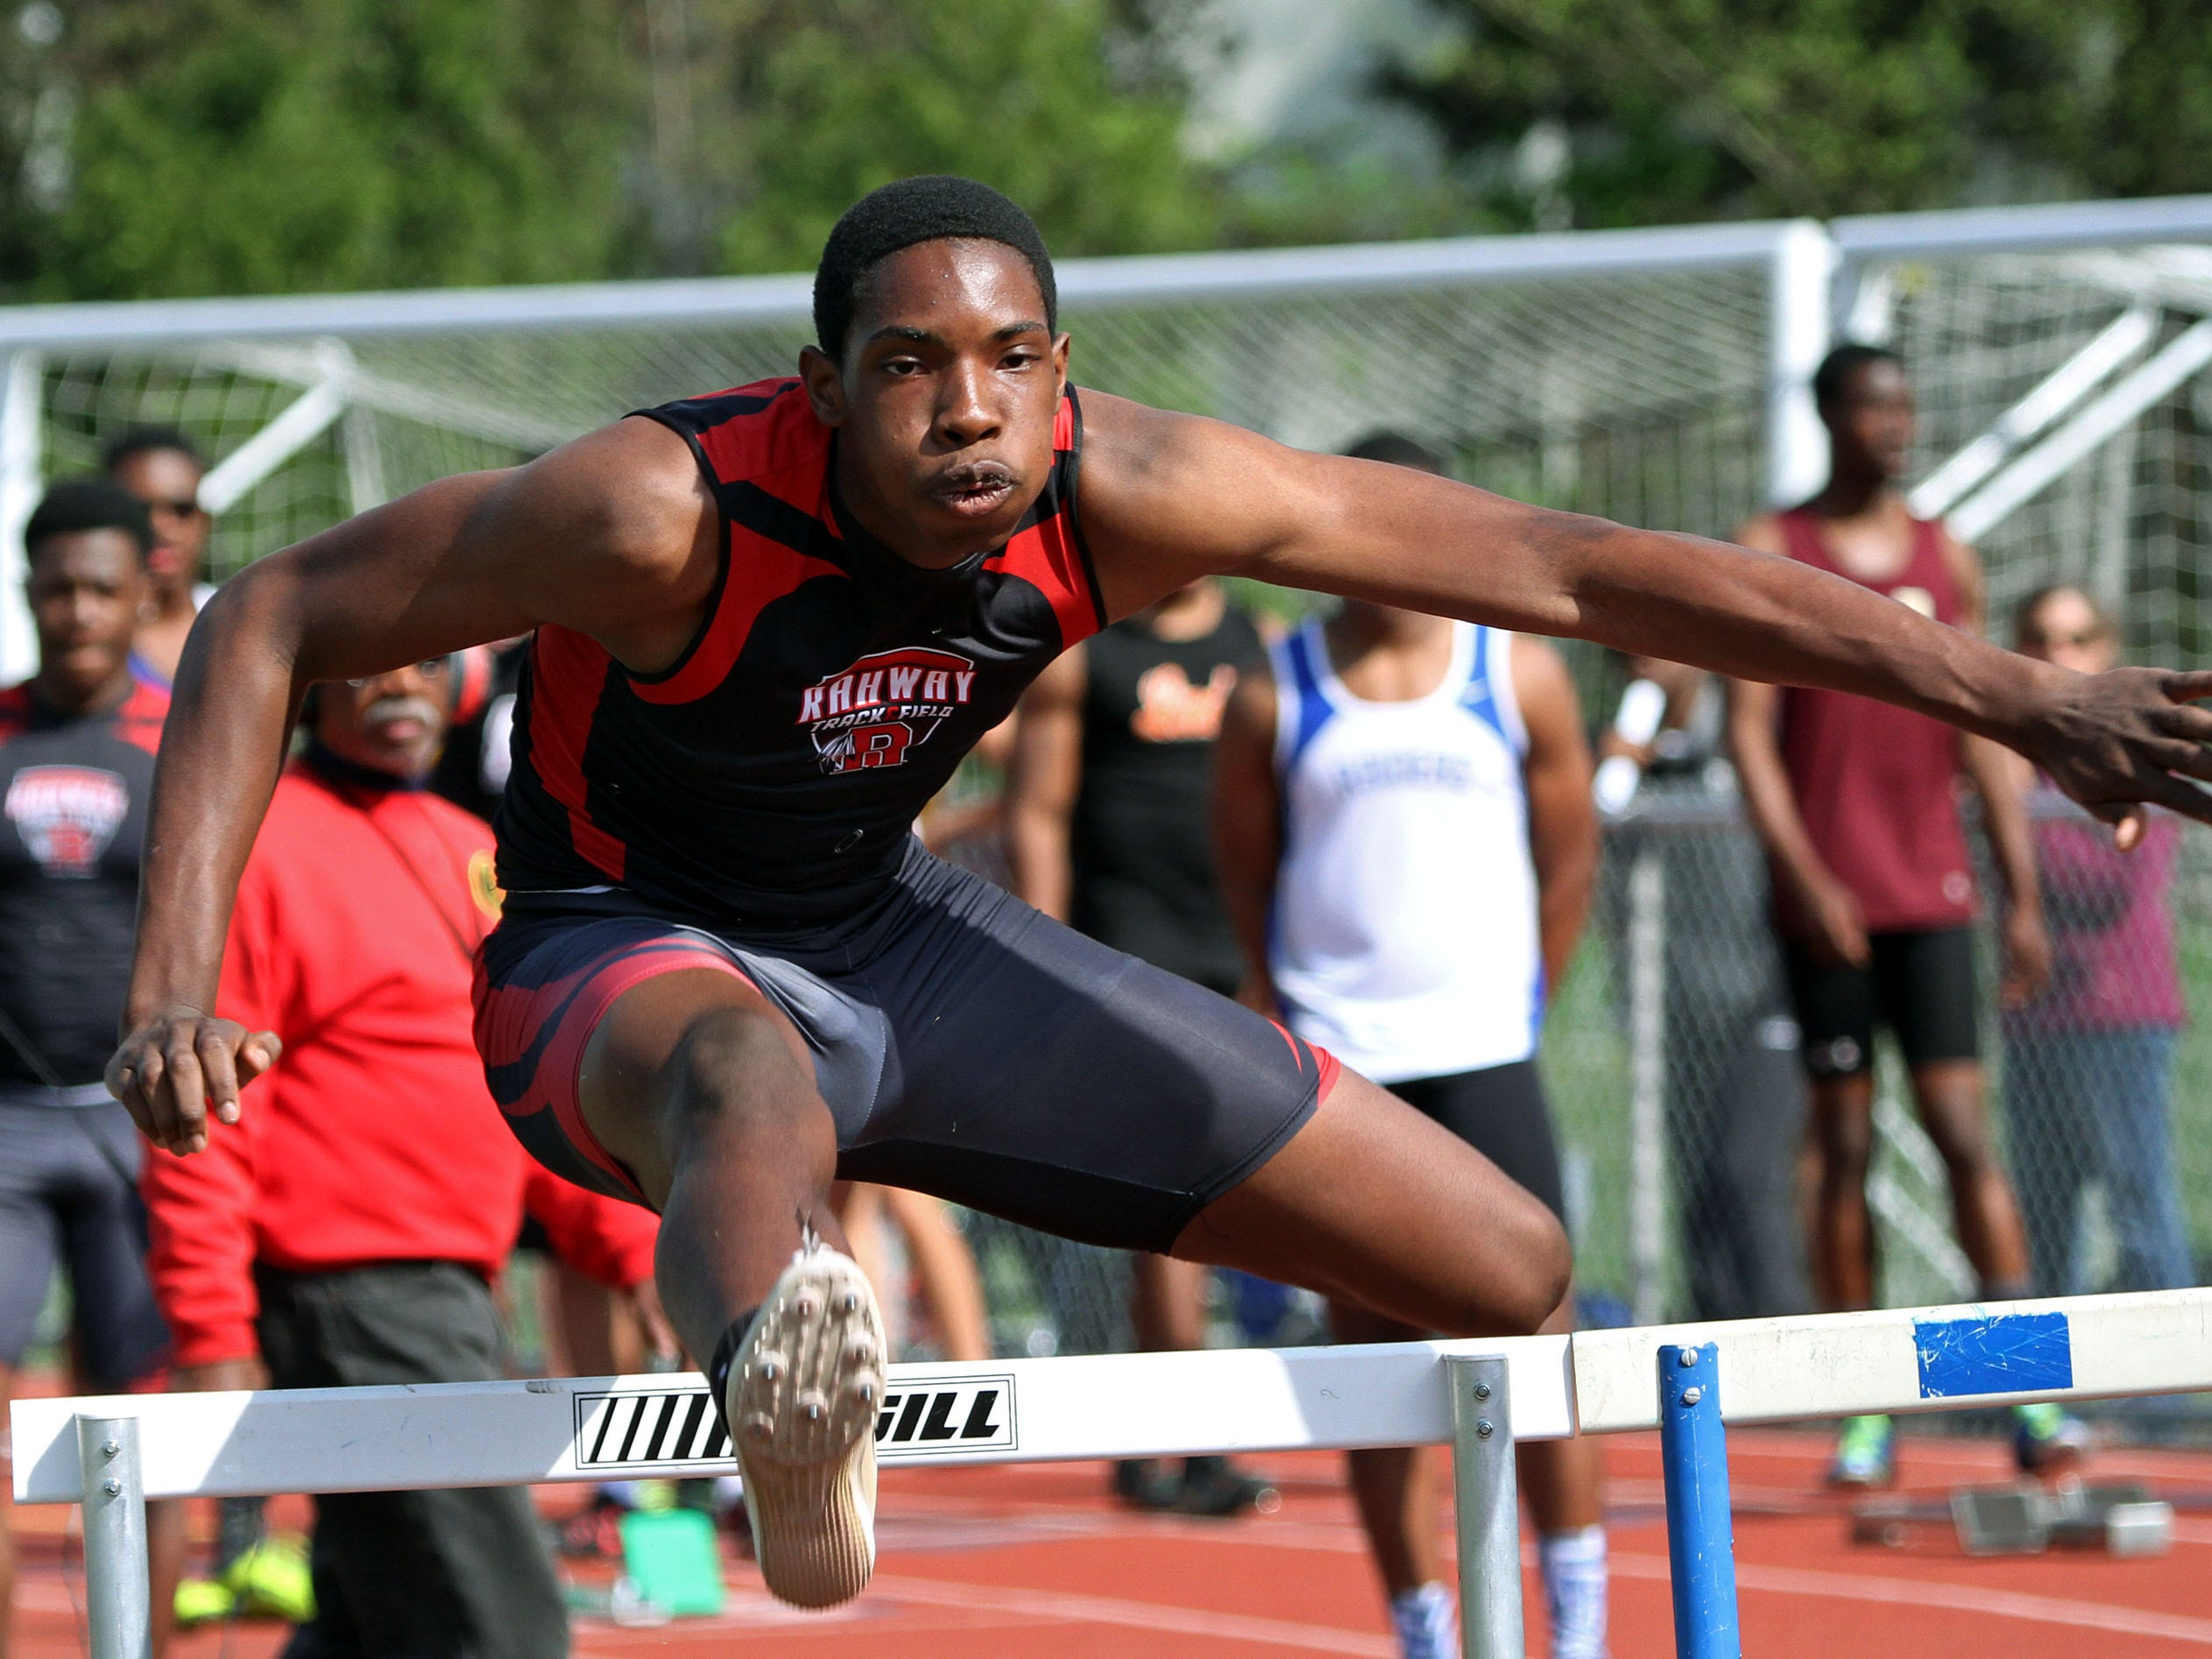 Rahway's Mykelti Thomas runs the first leg for his team in the shuttle hurdles.This is action of the Union County Track and Field Relays.